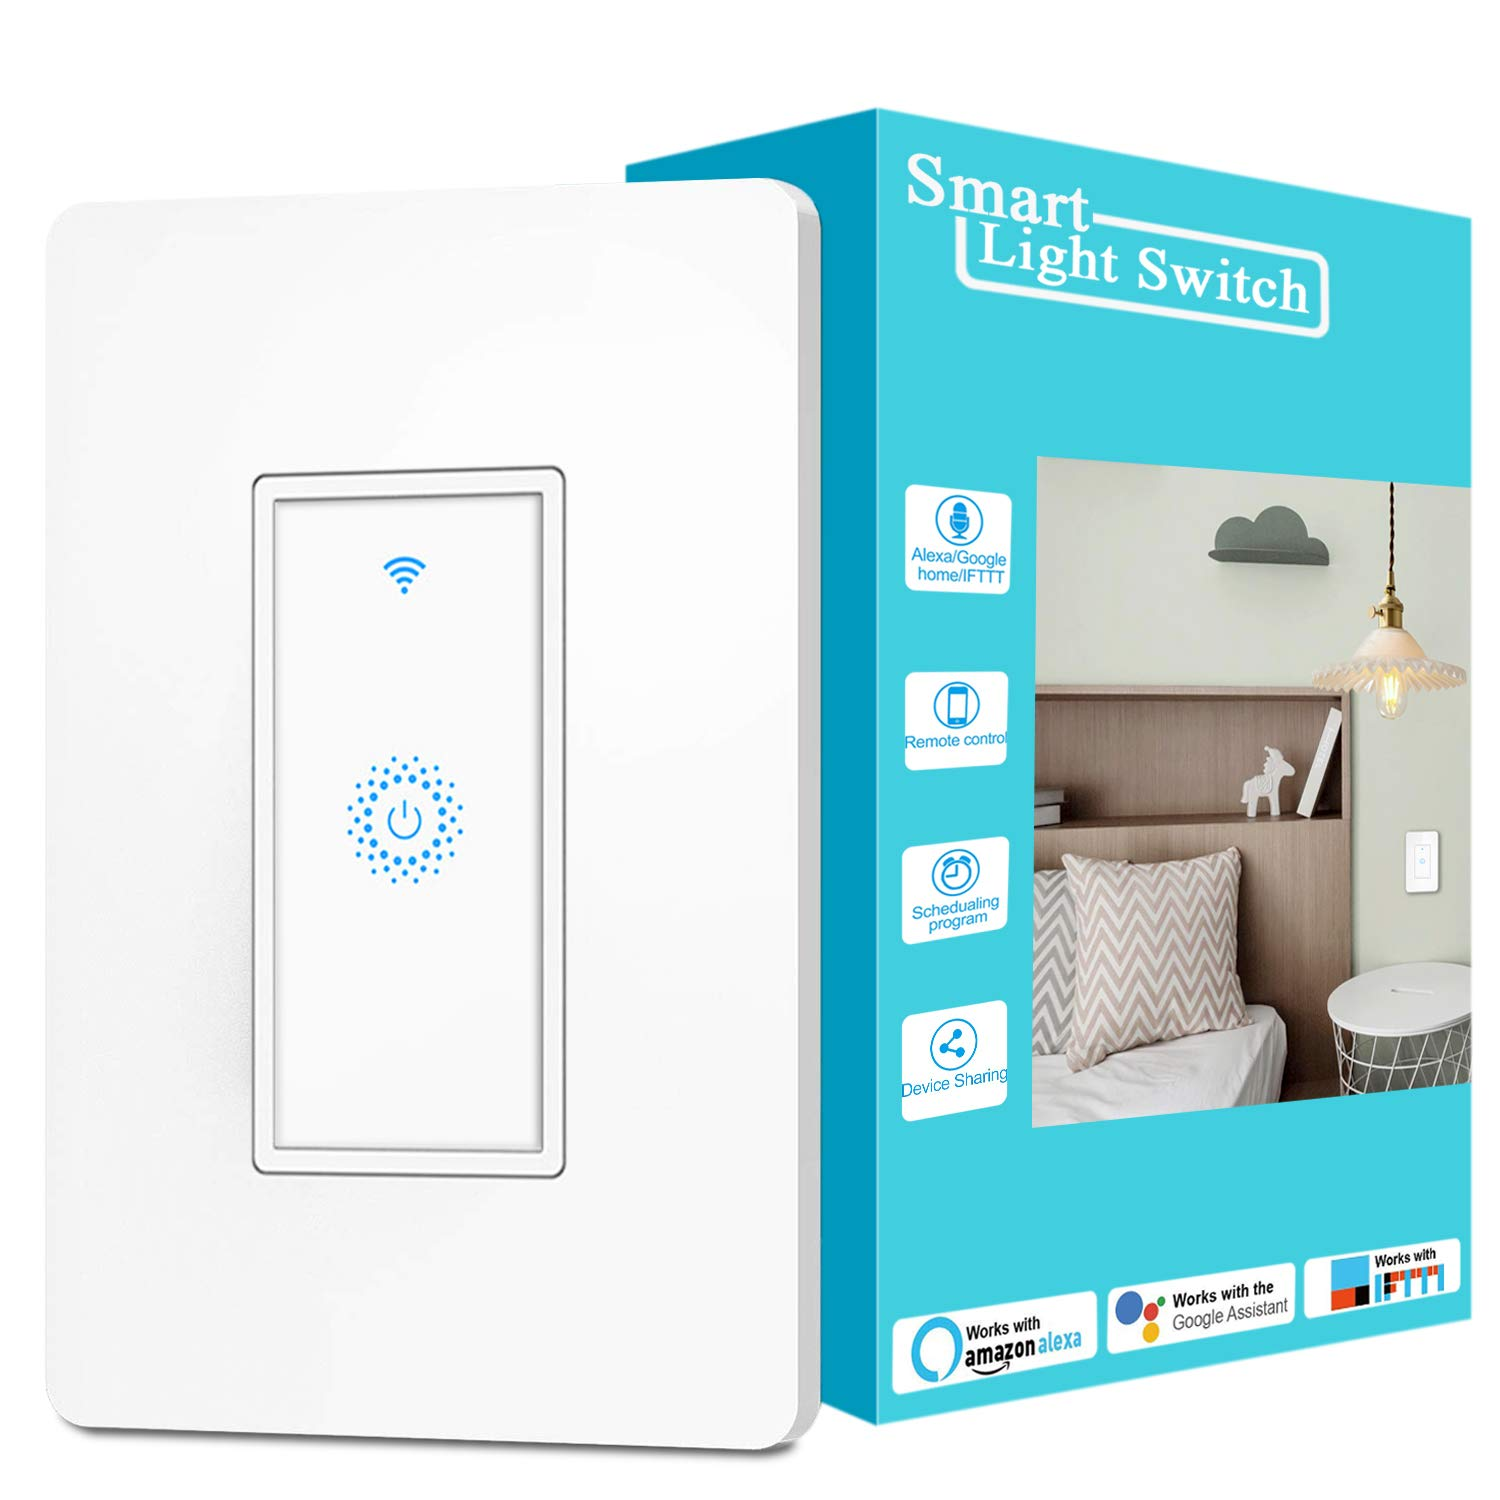 Alexa Smart Switch, Smart Light Switch Work with Google Home IFTTT, Voice and Remote Control, 2.4G WIFI, Schedules and Timers, Single-Pole, No Hub Required, Neutral Wire Required